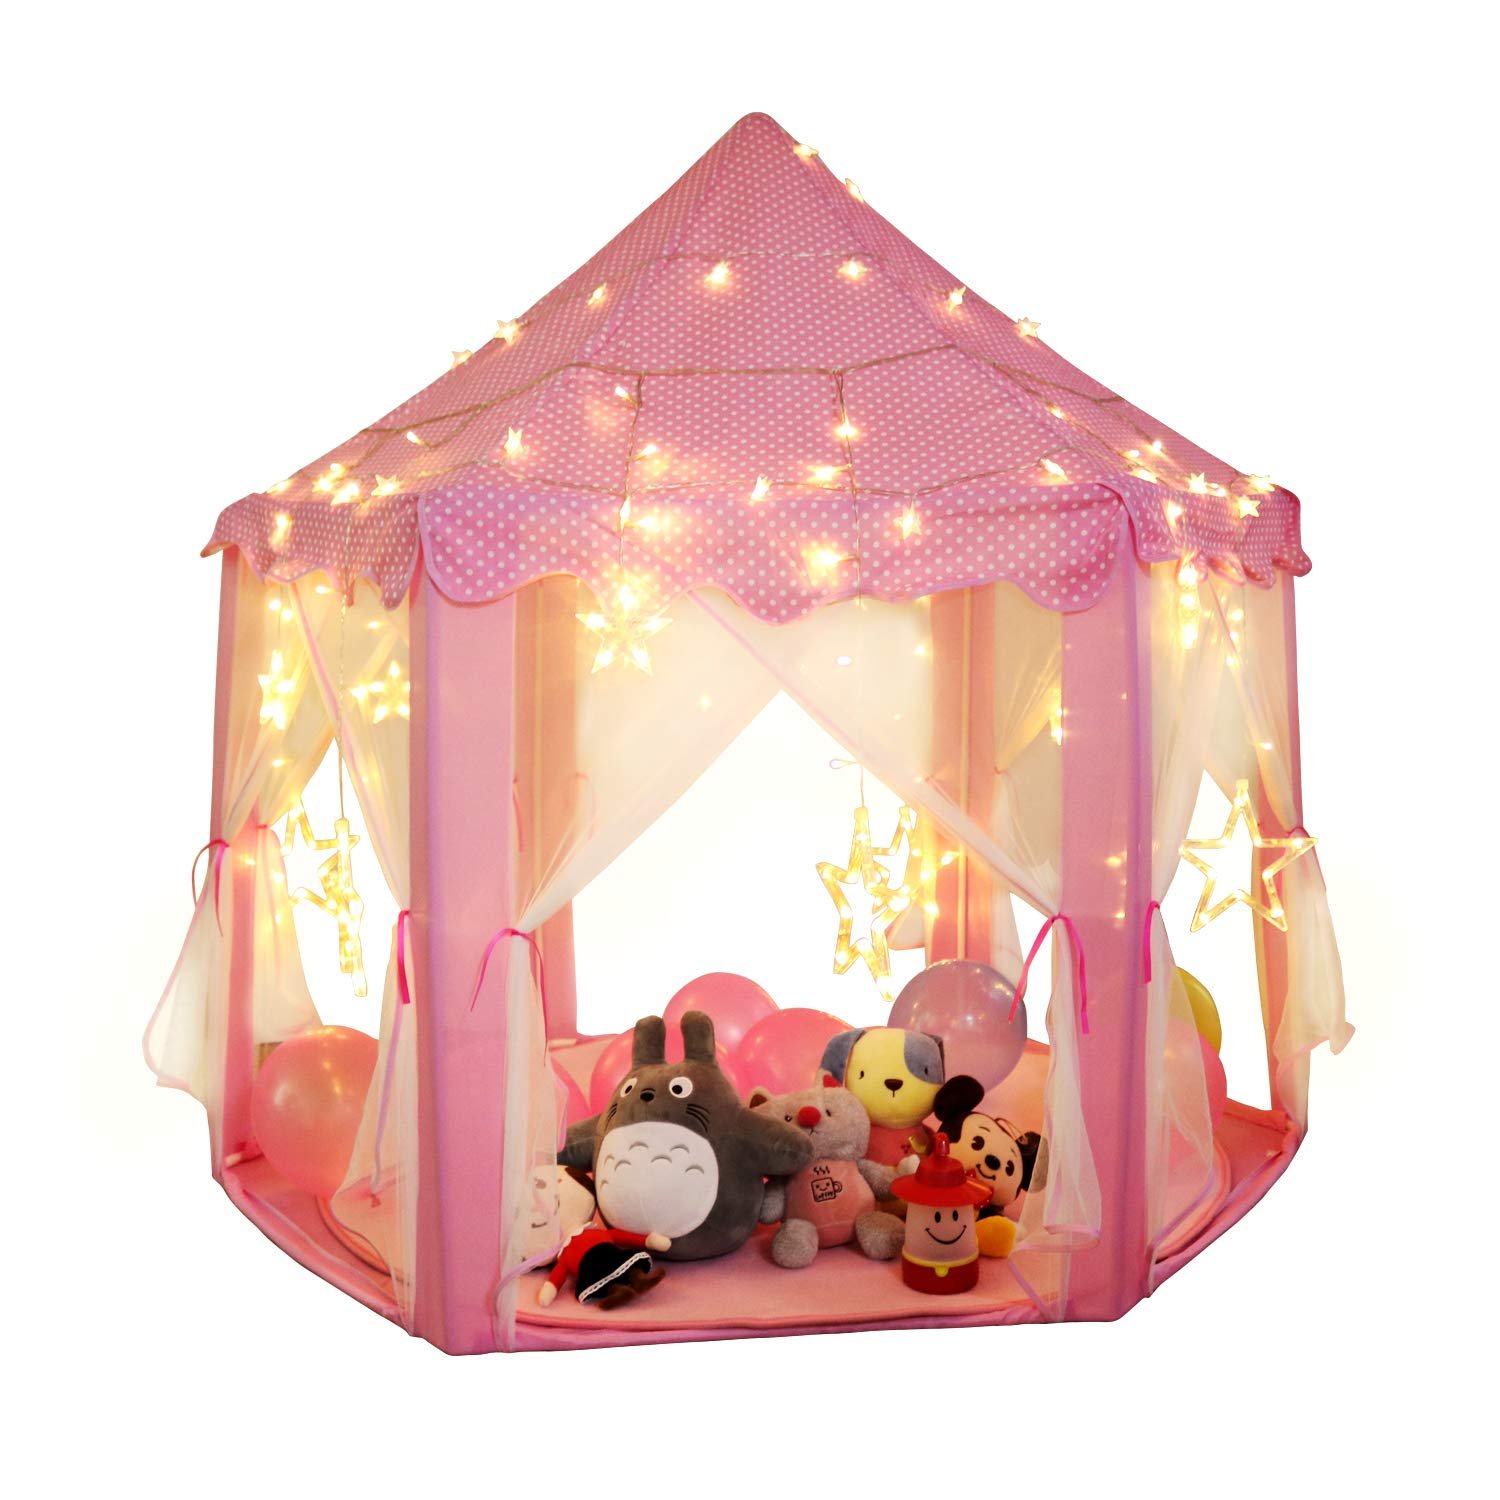 SANLINKEE Kids Pink Princess Castle with LED Star Lights, Princess Castle Play Tent Indoor and Outdoor Playhouse Hexagon Fairy Princess Castle Play Tent for Boys and Girls (Pink)